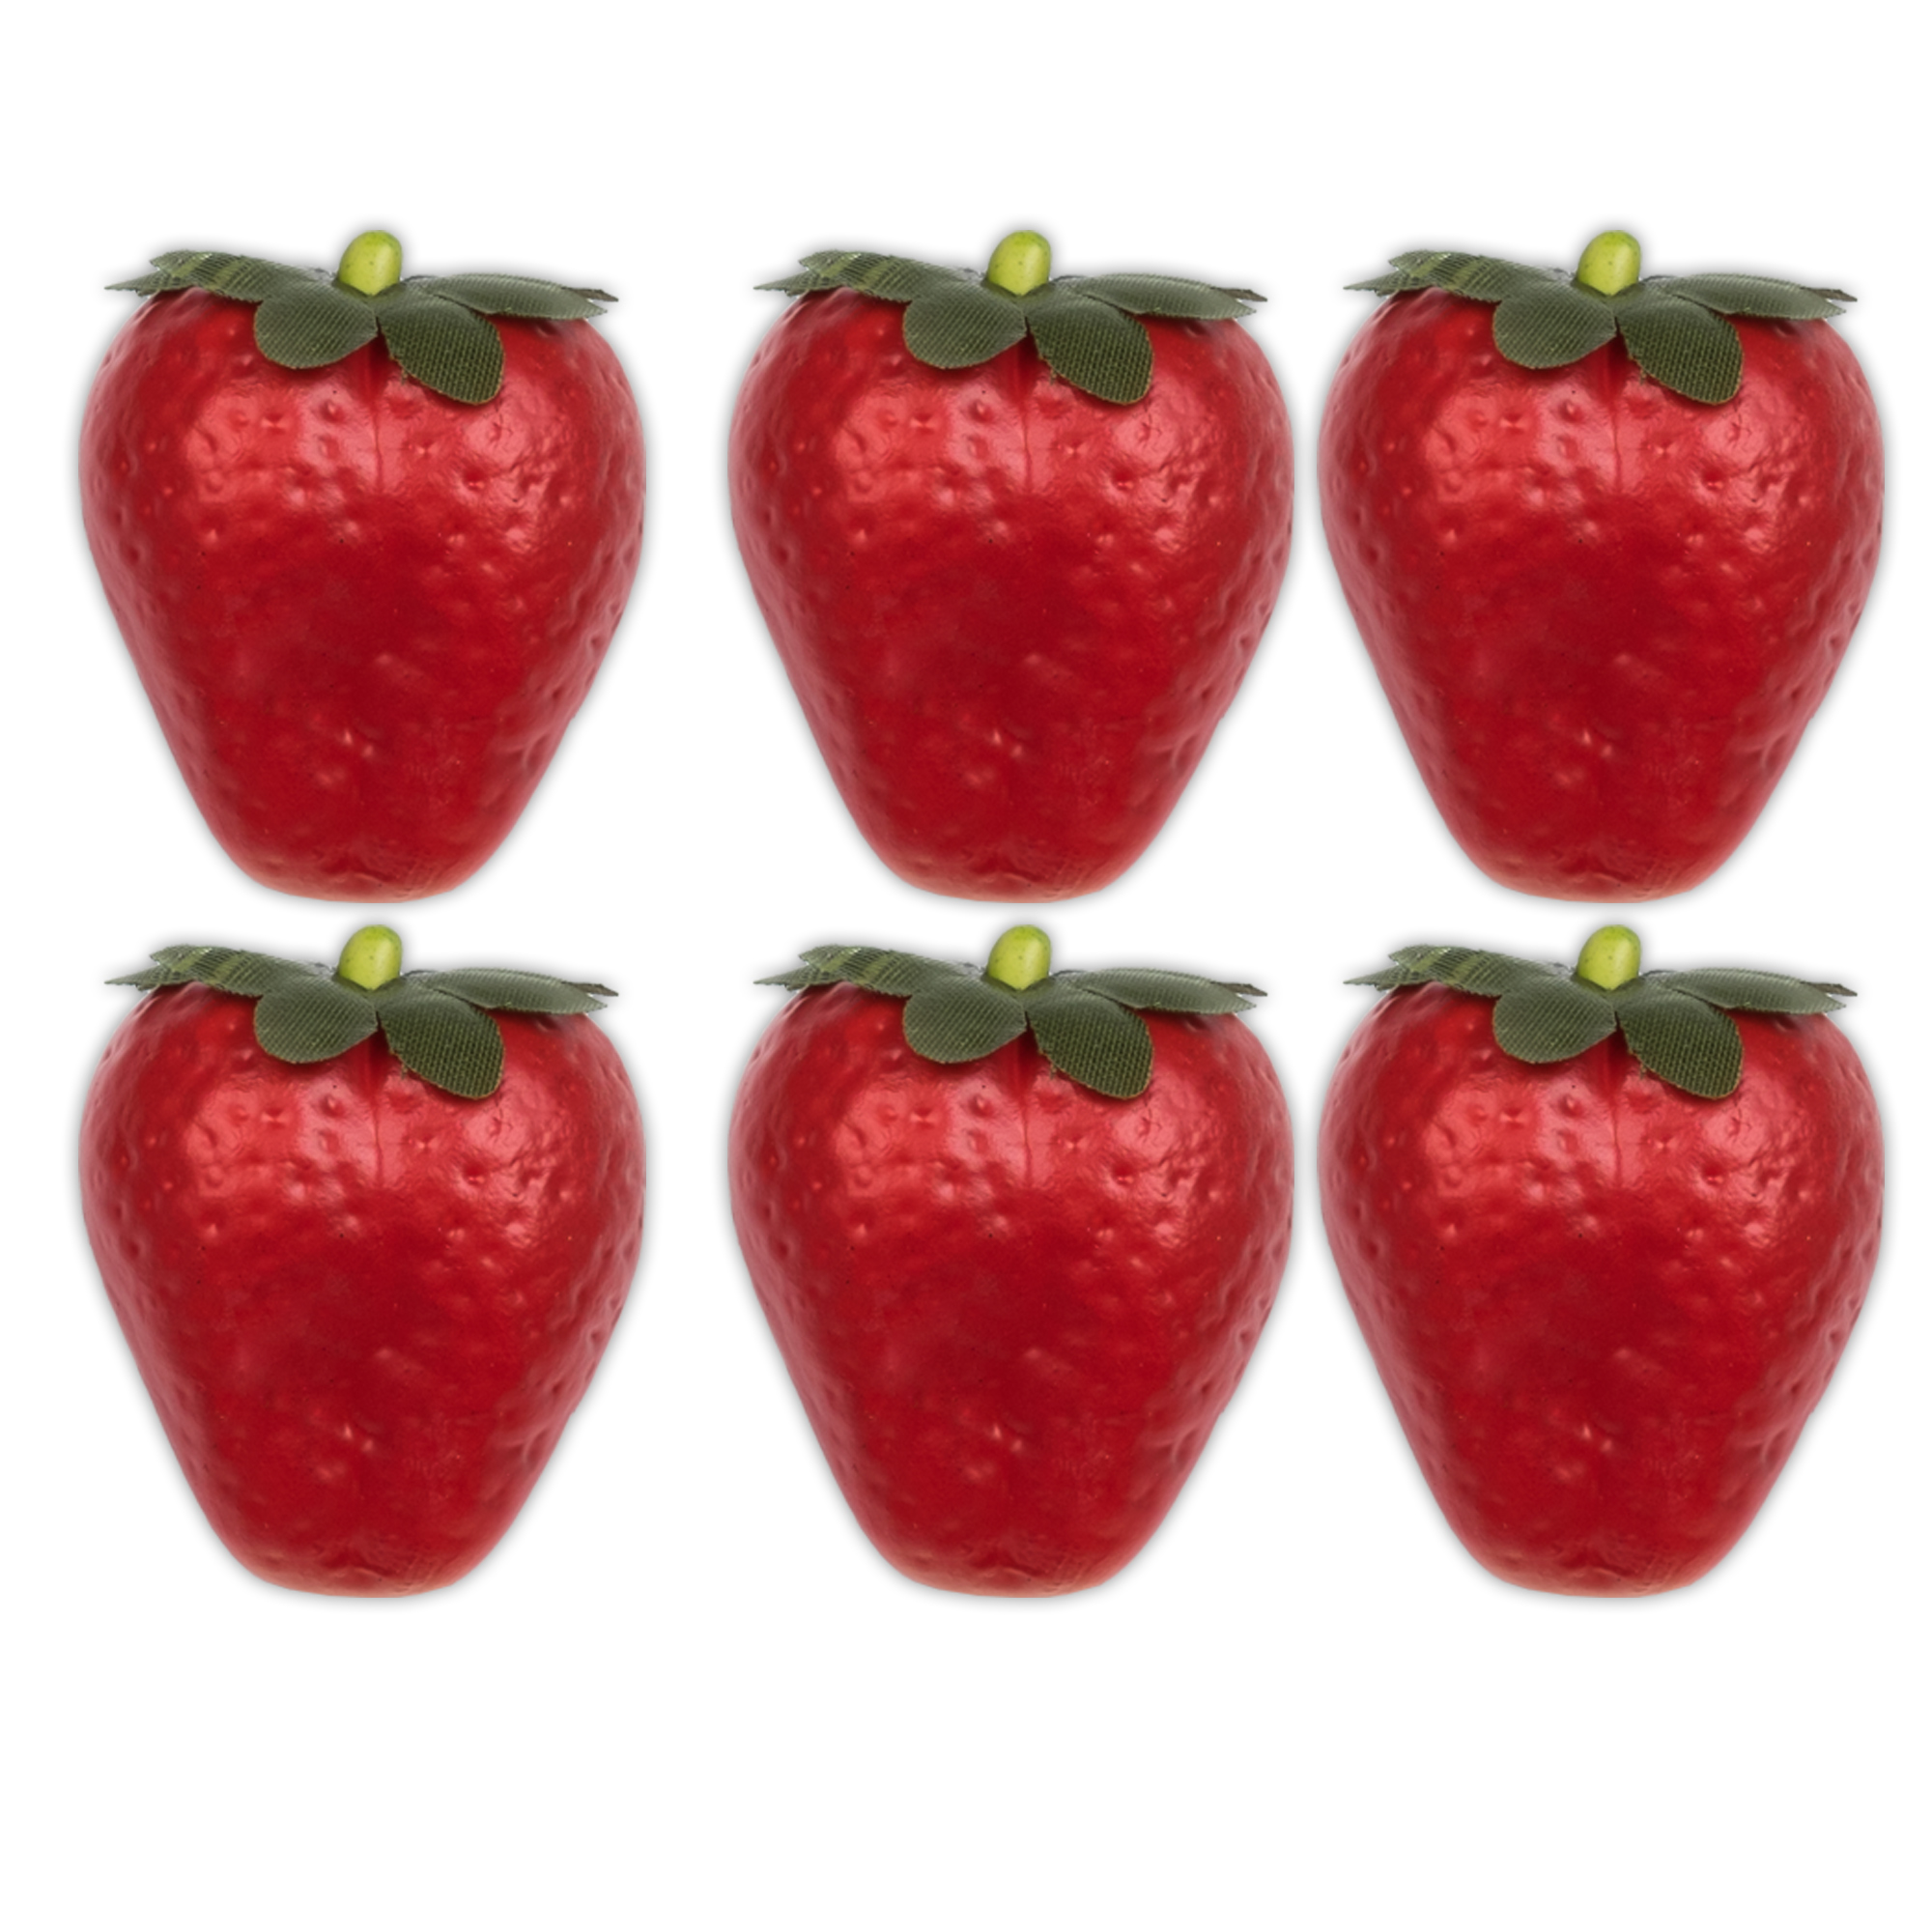 "Decorative Small 1.5"" Polystyrene Foam Artificial Strawberries Pack of 6"